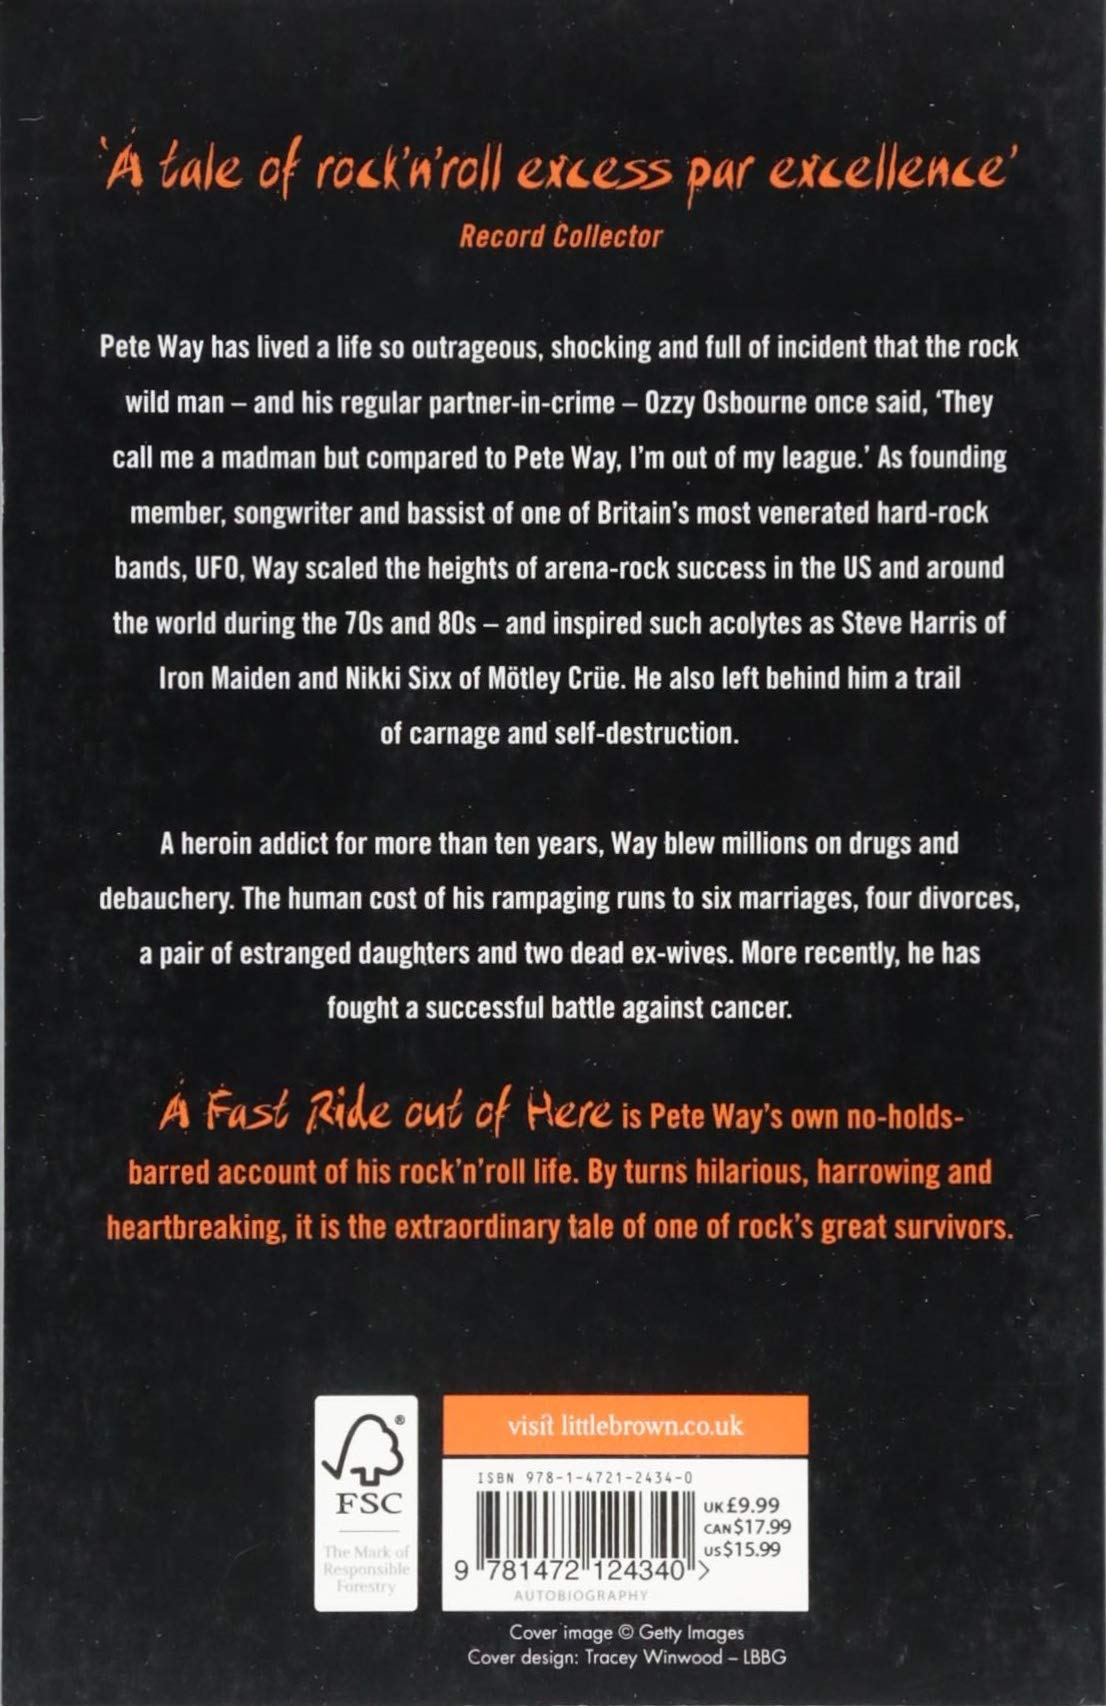 A Fast Ride Out of Here: Confessions of Rock's Most Dangerous Man:  Amazon.co.uk: Pete Way, Paul Rees: 9781472124340: Books